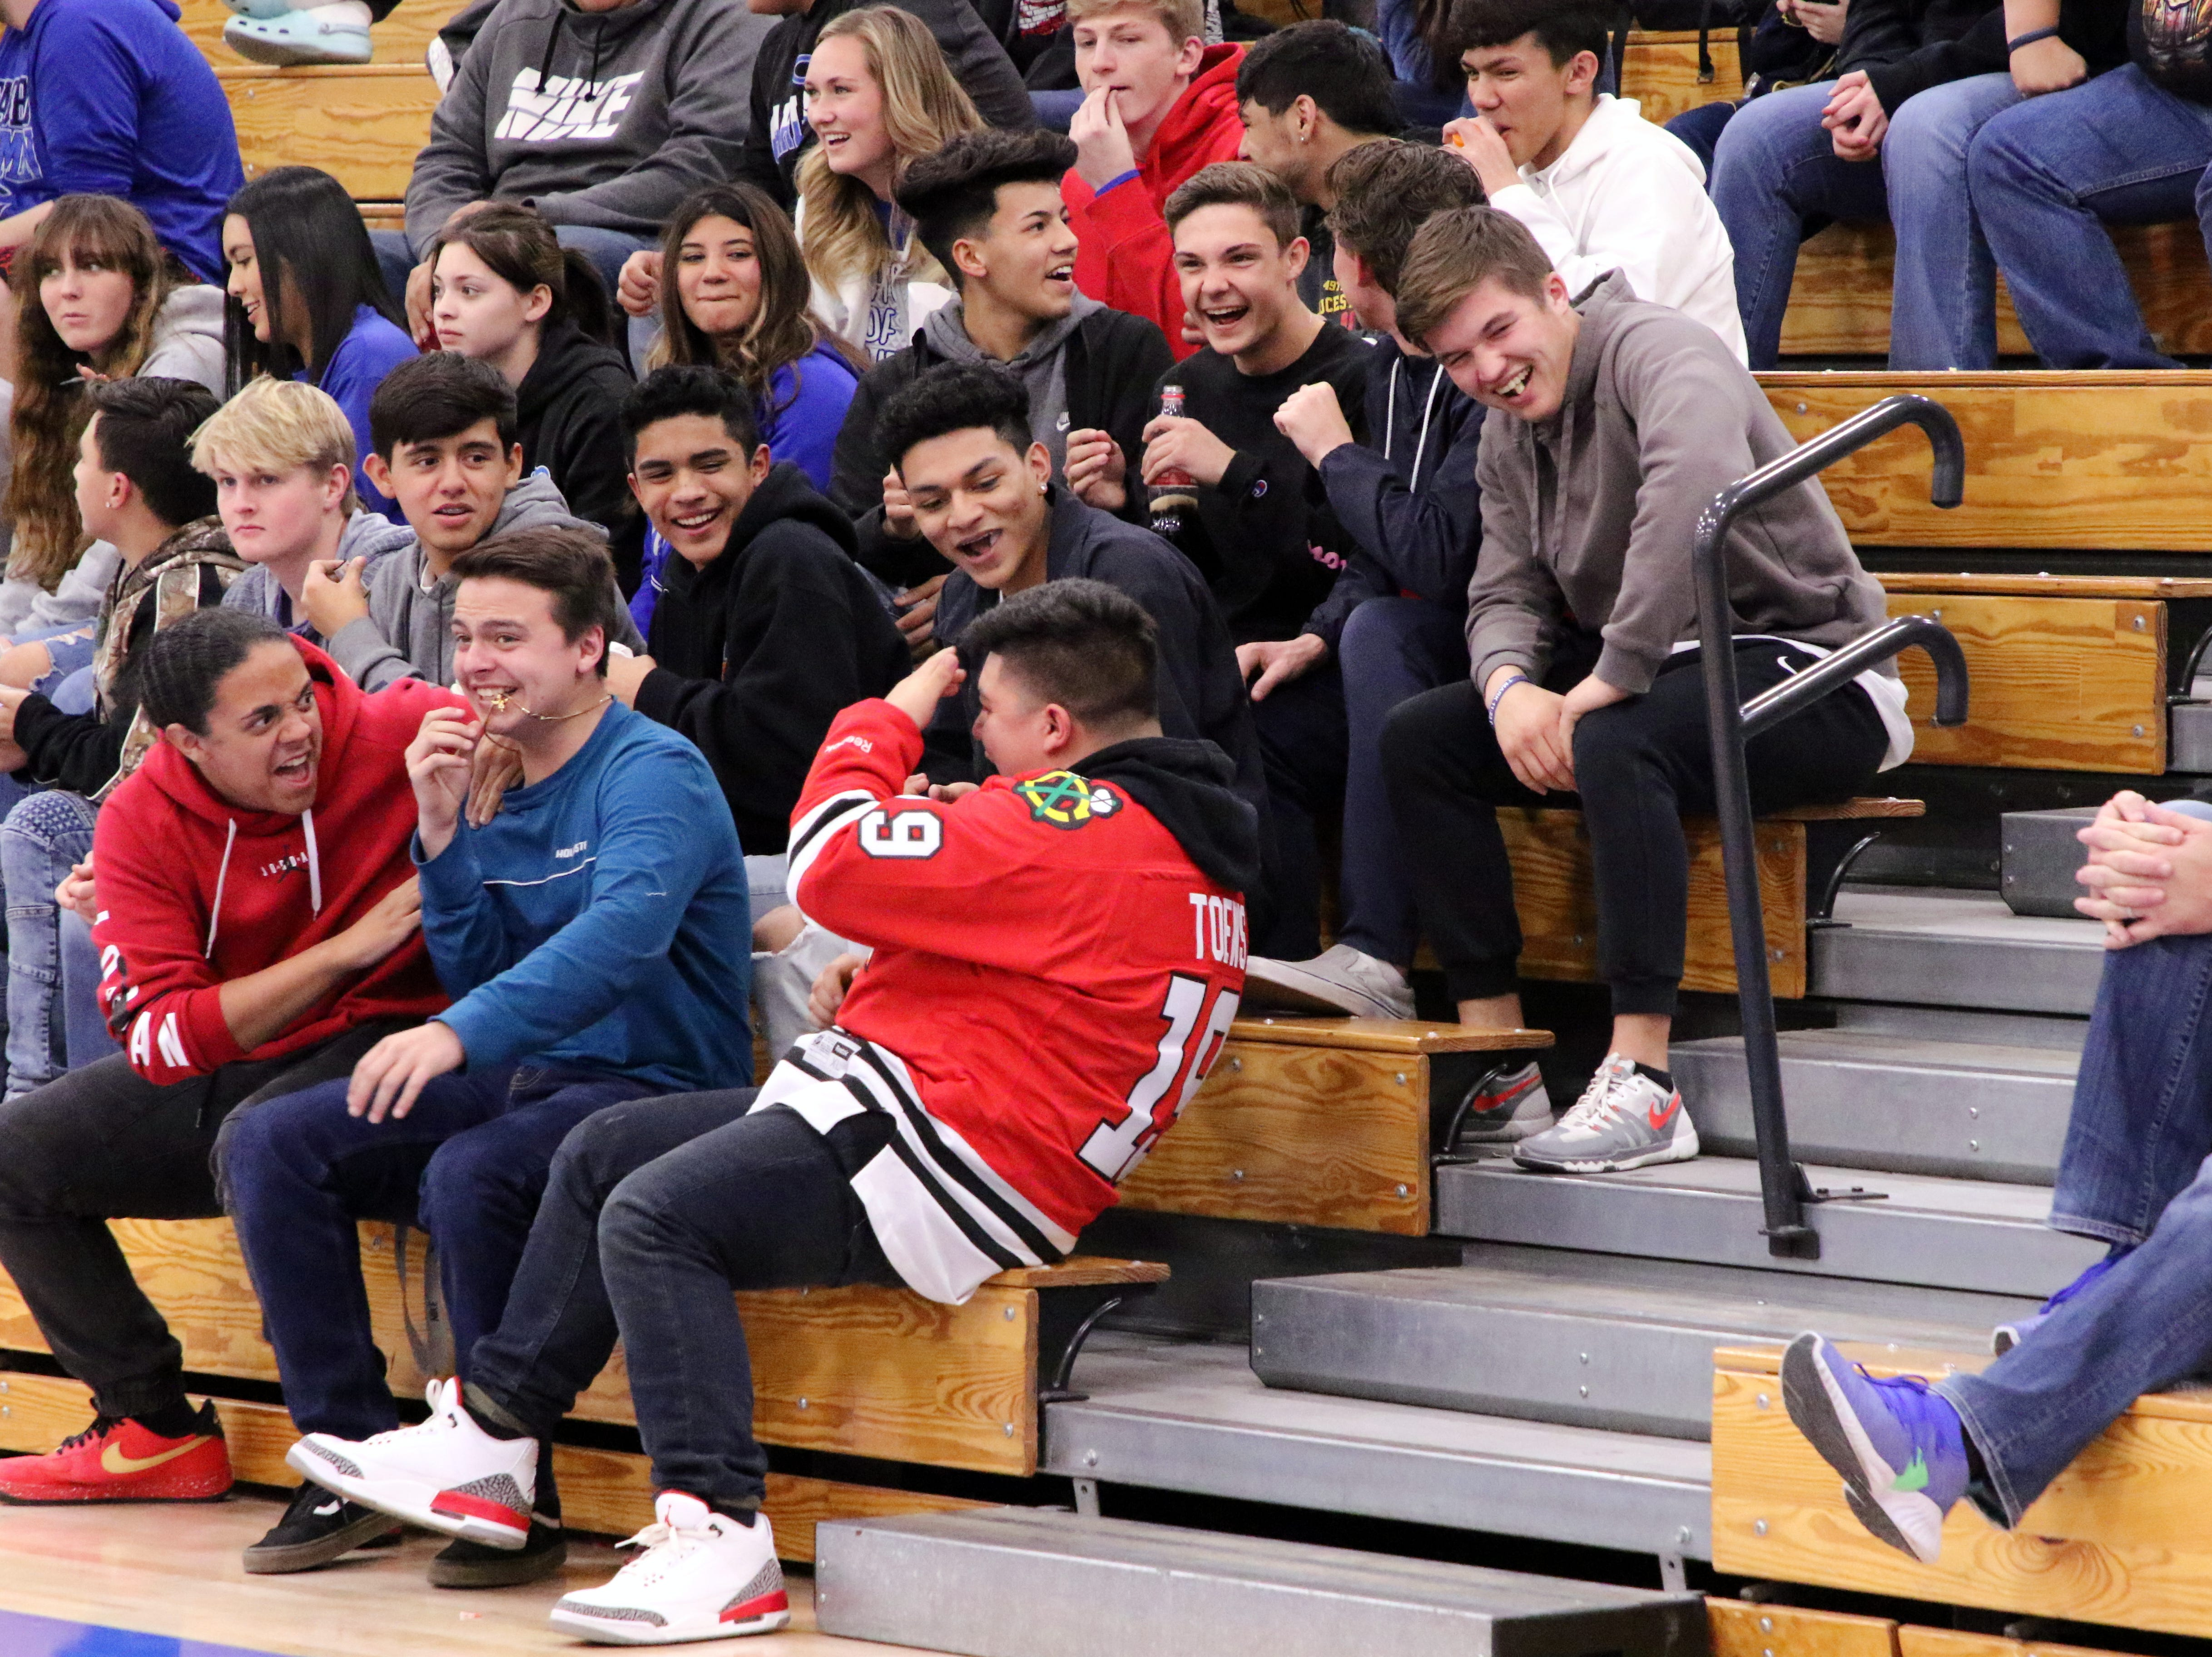 Carlsbad students laugh at a fellow student in the Chicago Blackhawks jersey after he was hit in the face with a basketball during Friday's game. He was looking at his phone when the ball smacked him in the head. No injuries were reported.